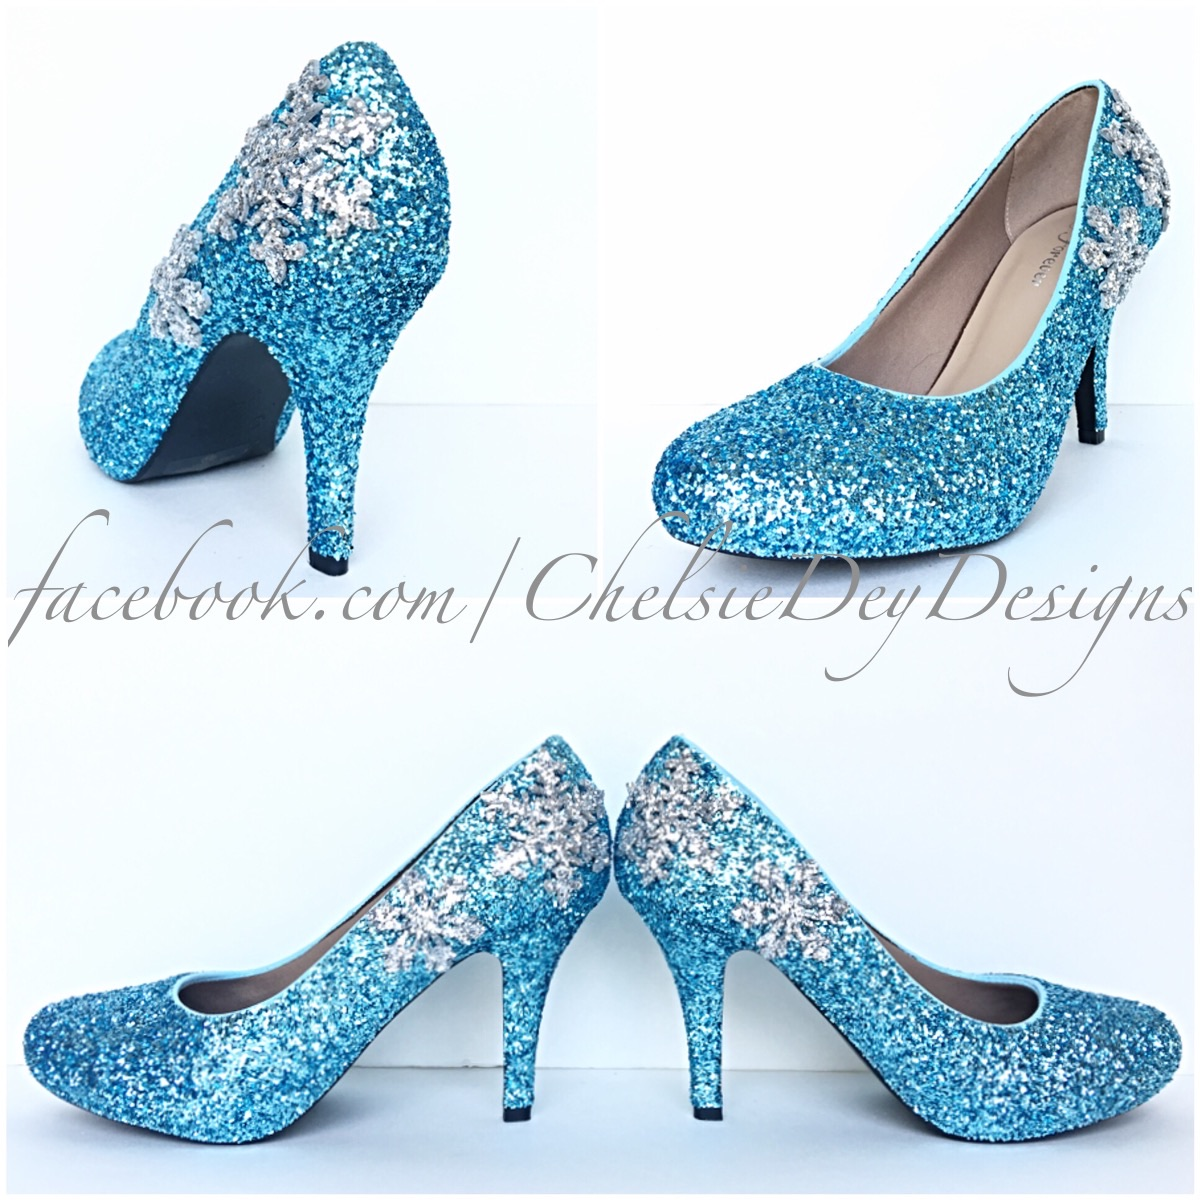 b0416e5d4766 Aqua Glitter High Heels - Silver Snowflake Pumps -Blue Turquoise Shoes -  Glitzy Low Wedding Heels on Storenvy